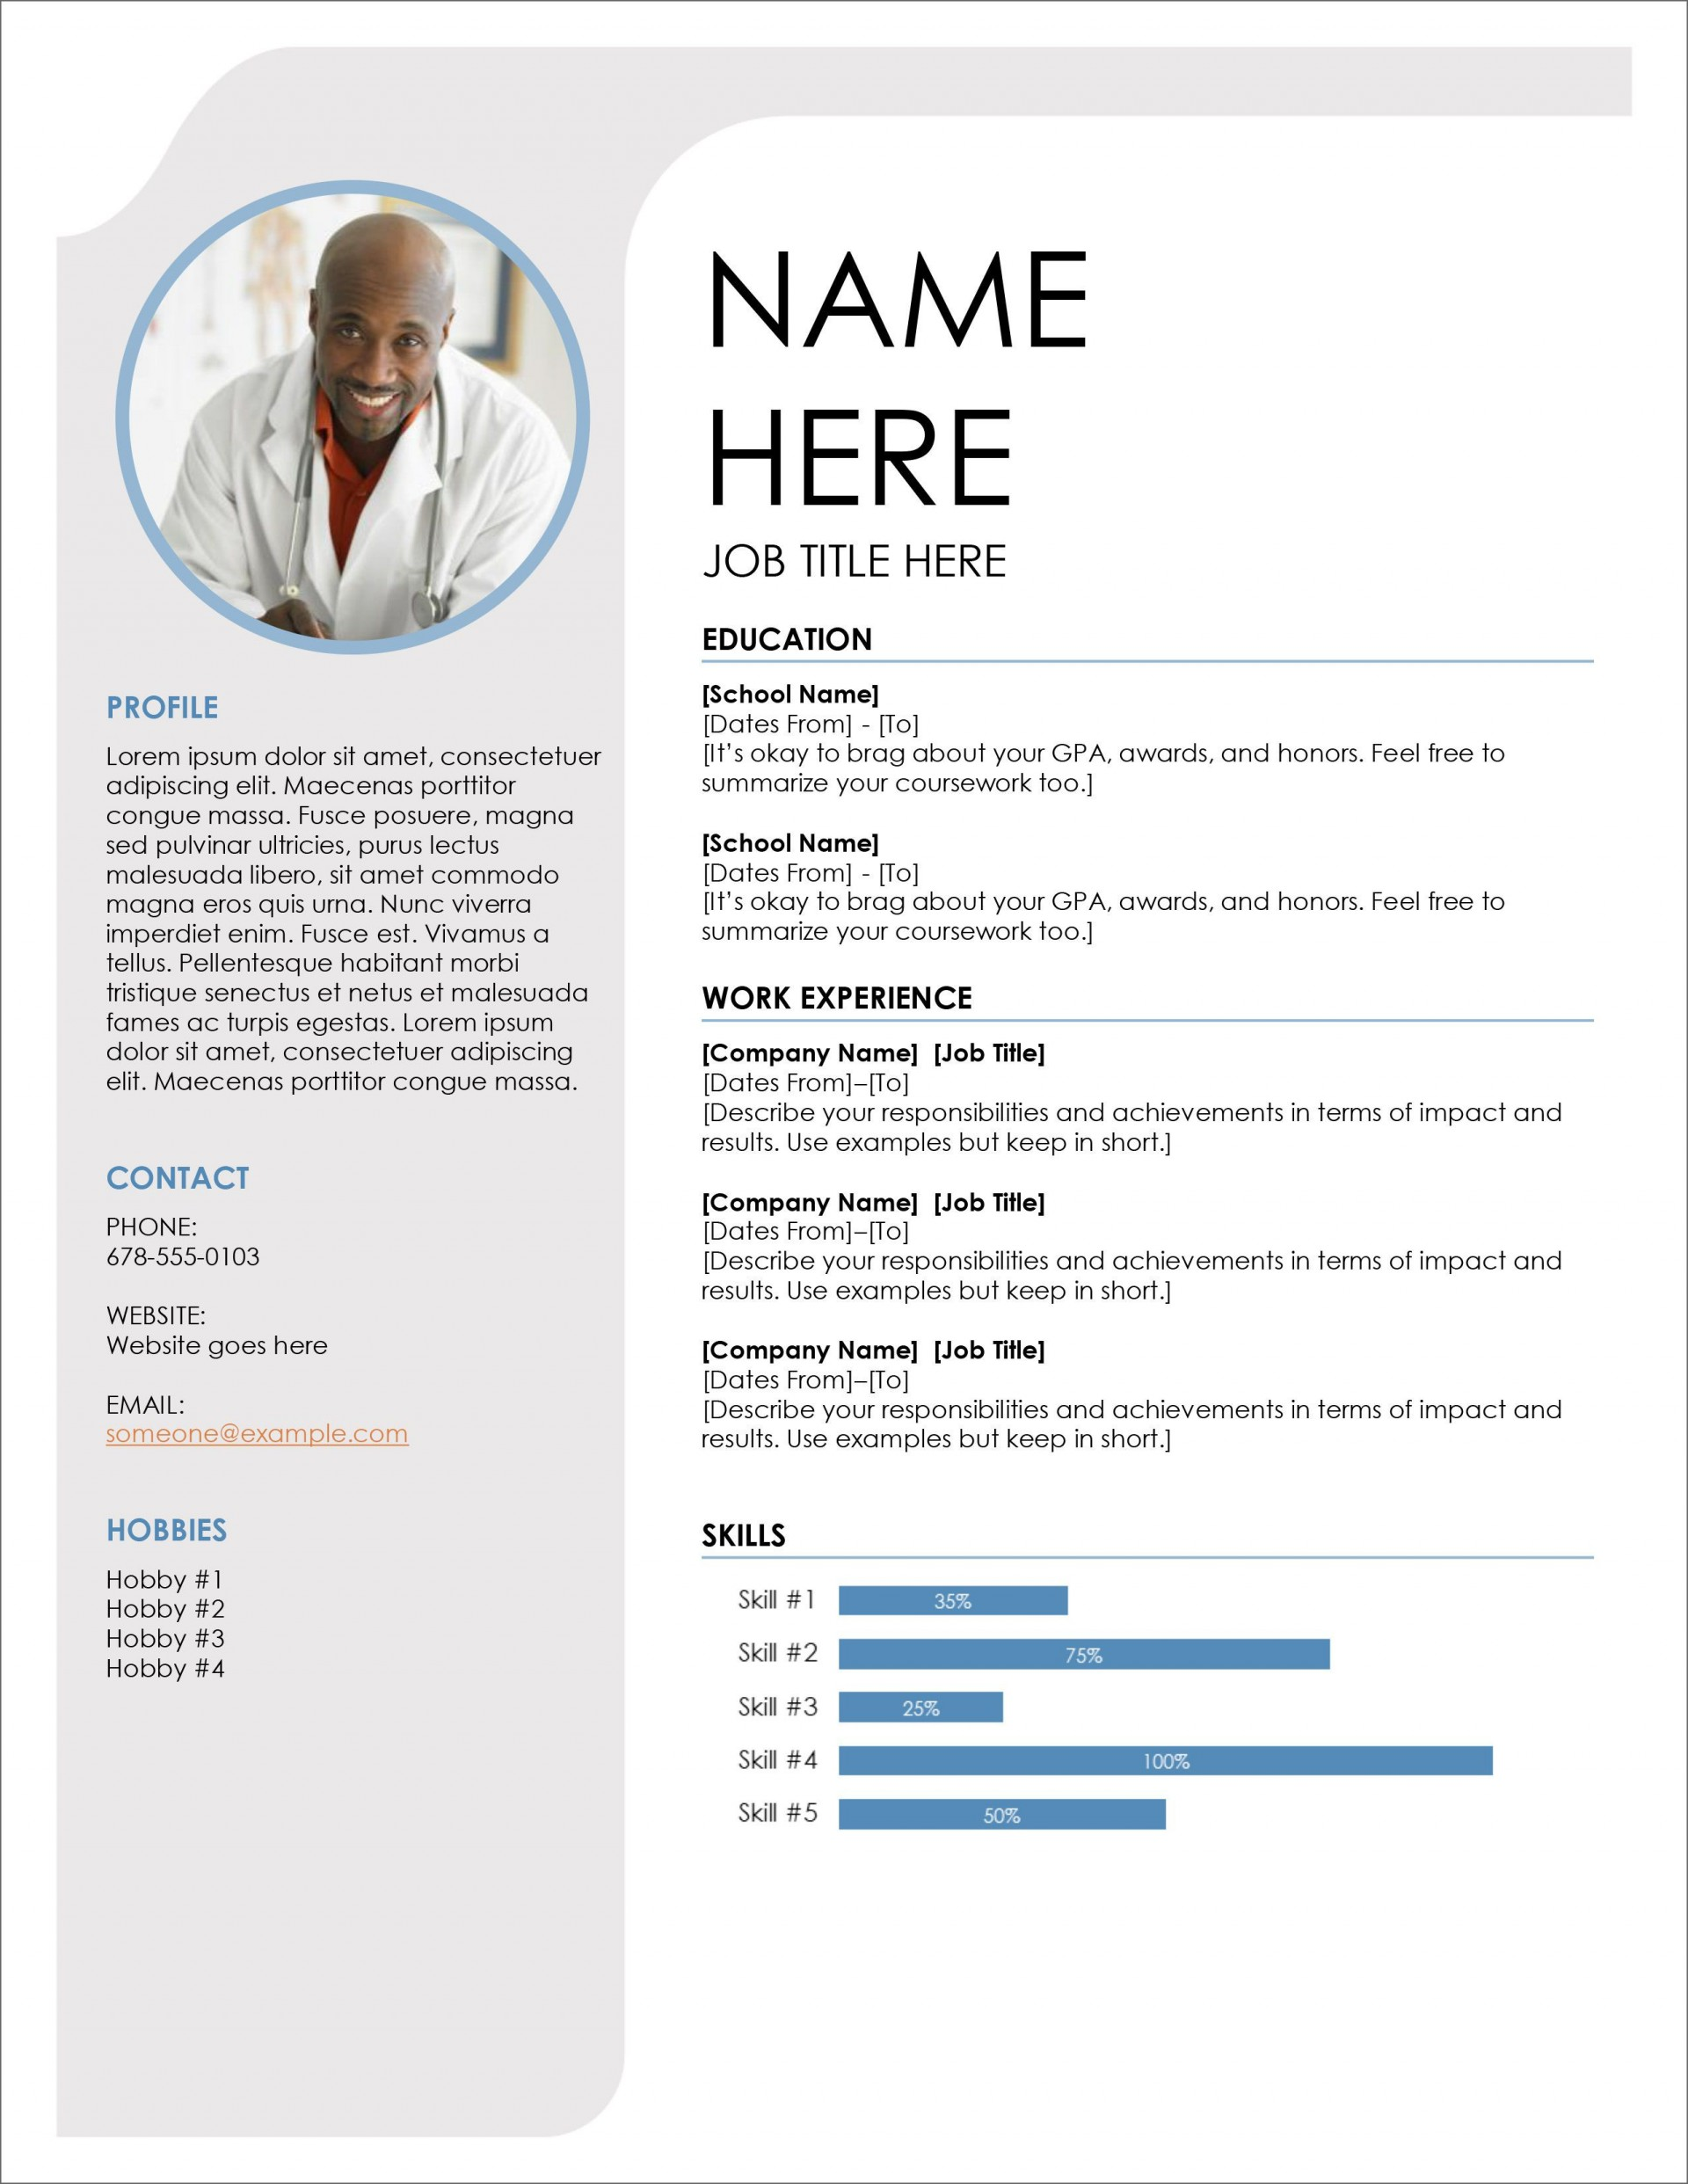 006 Astounding Professional Resume Template Free Download Word Image  Cv 2020 Format With Photo1920